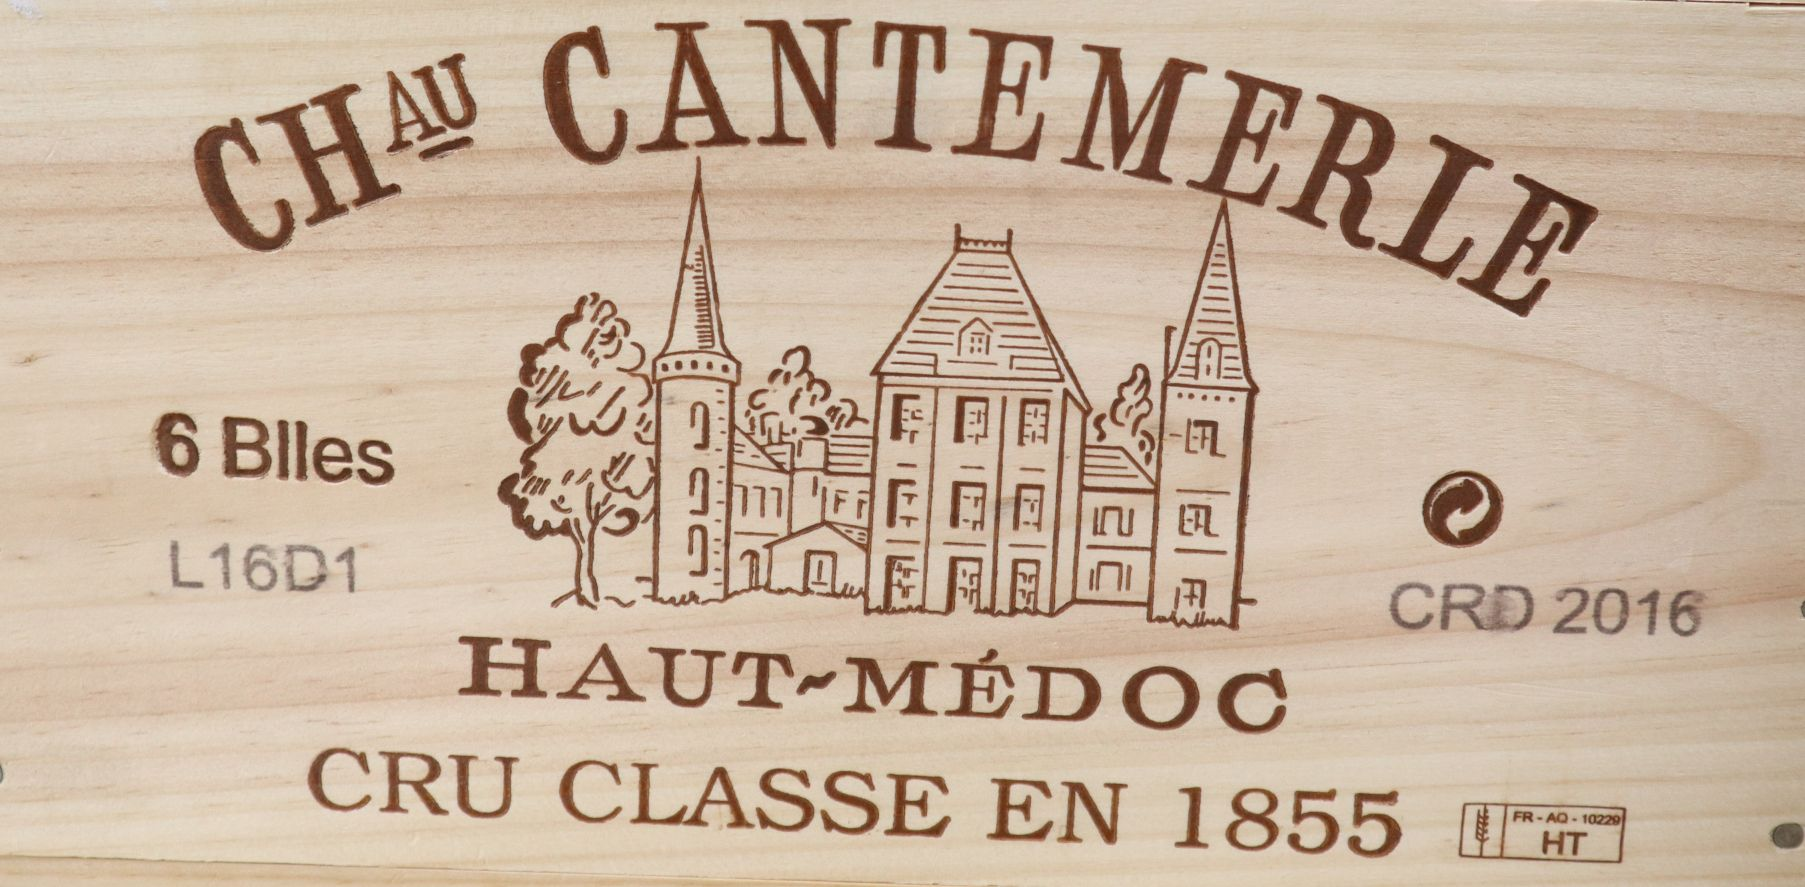 Lot 1033 - A case of six Chateau Cantemerle Haut Medoc wine, 2016